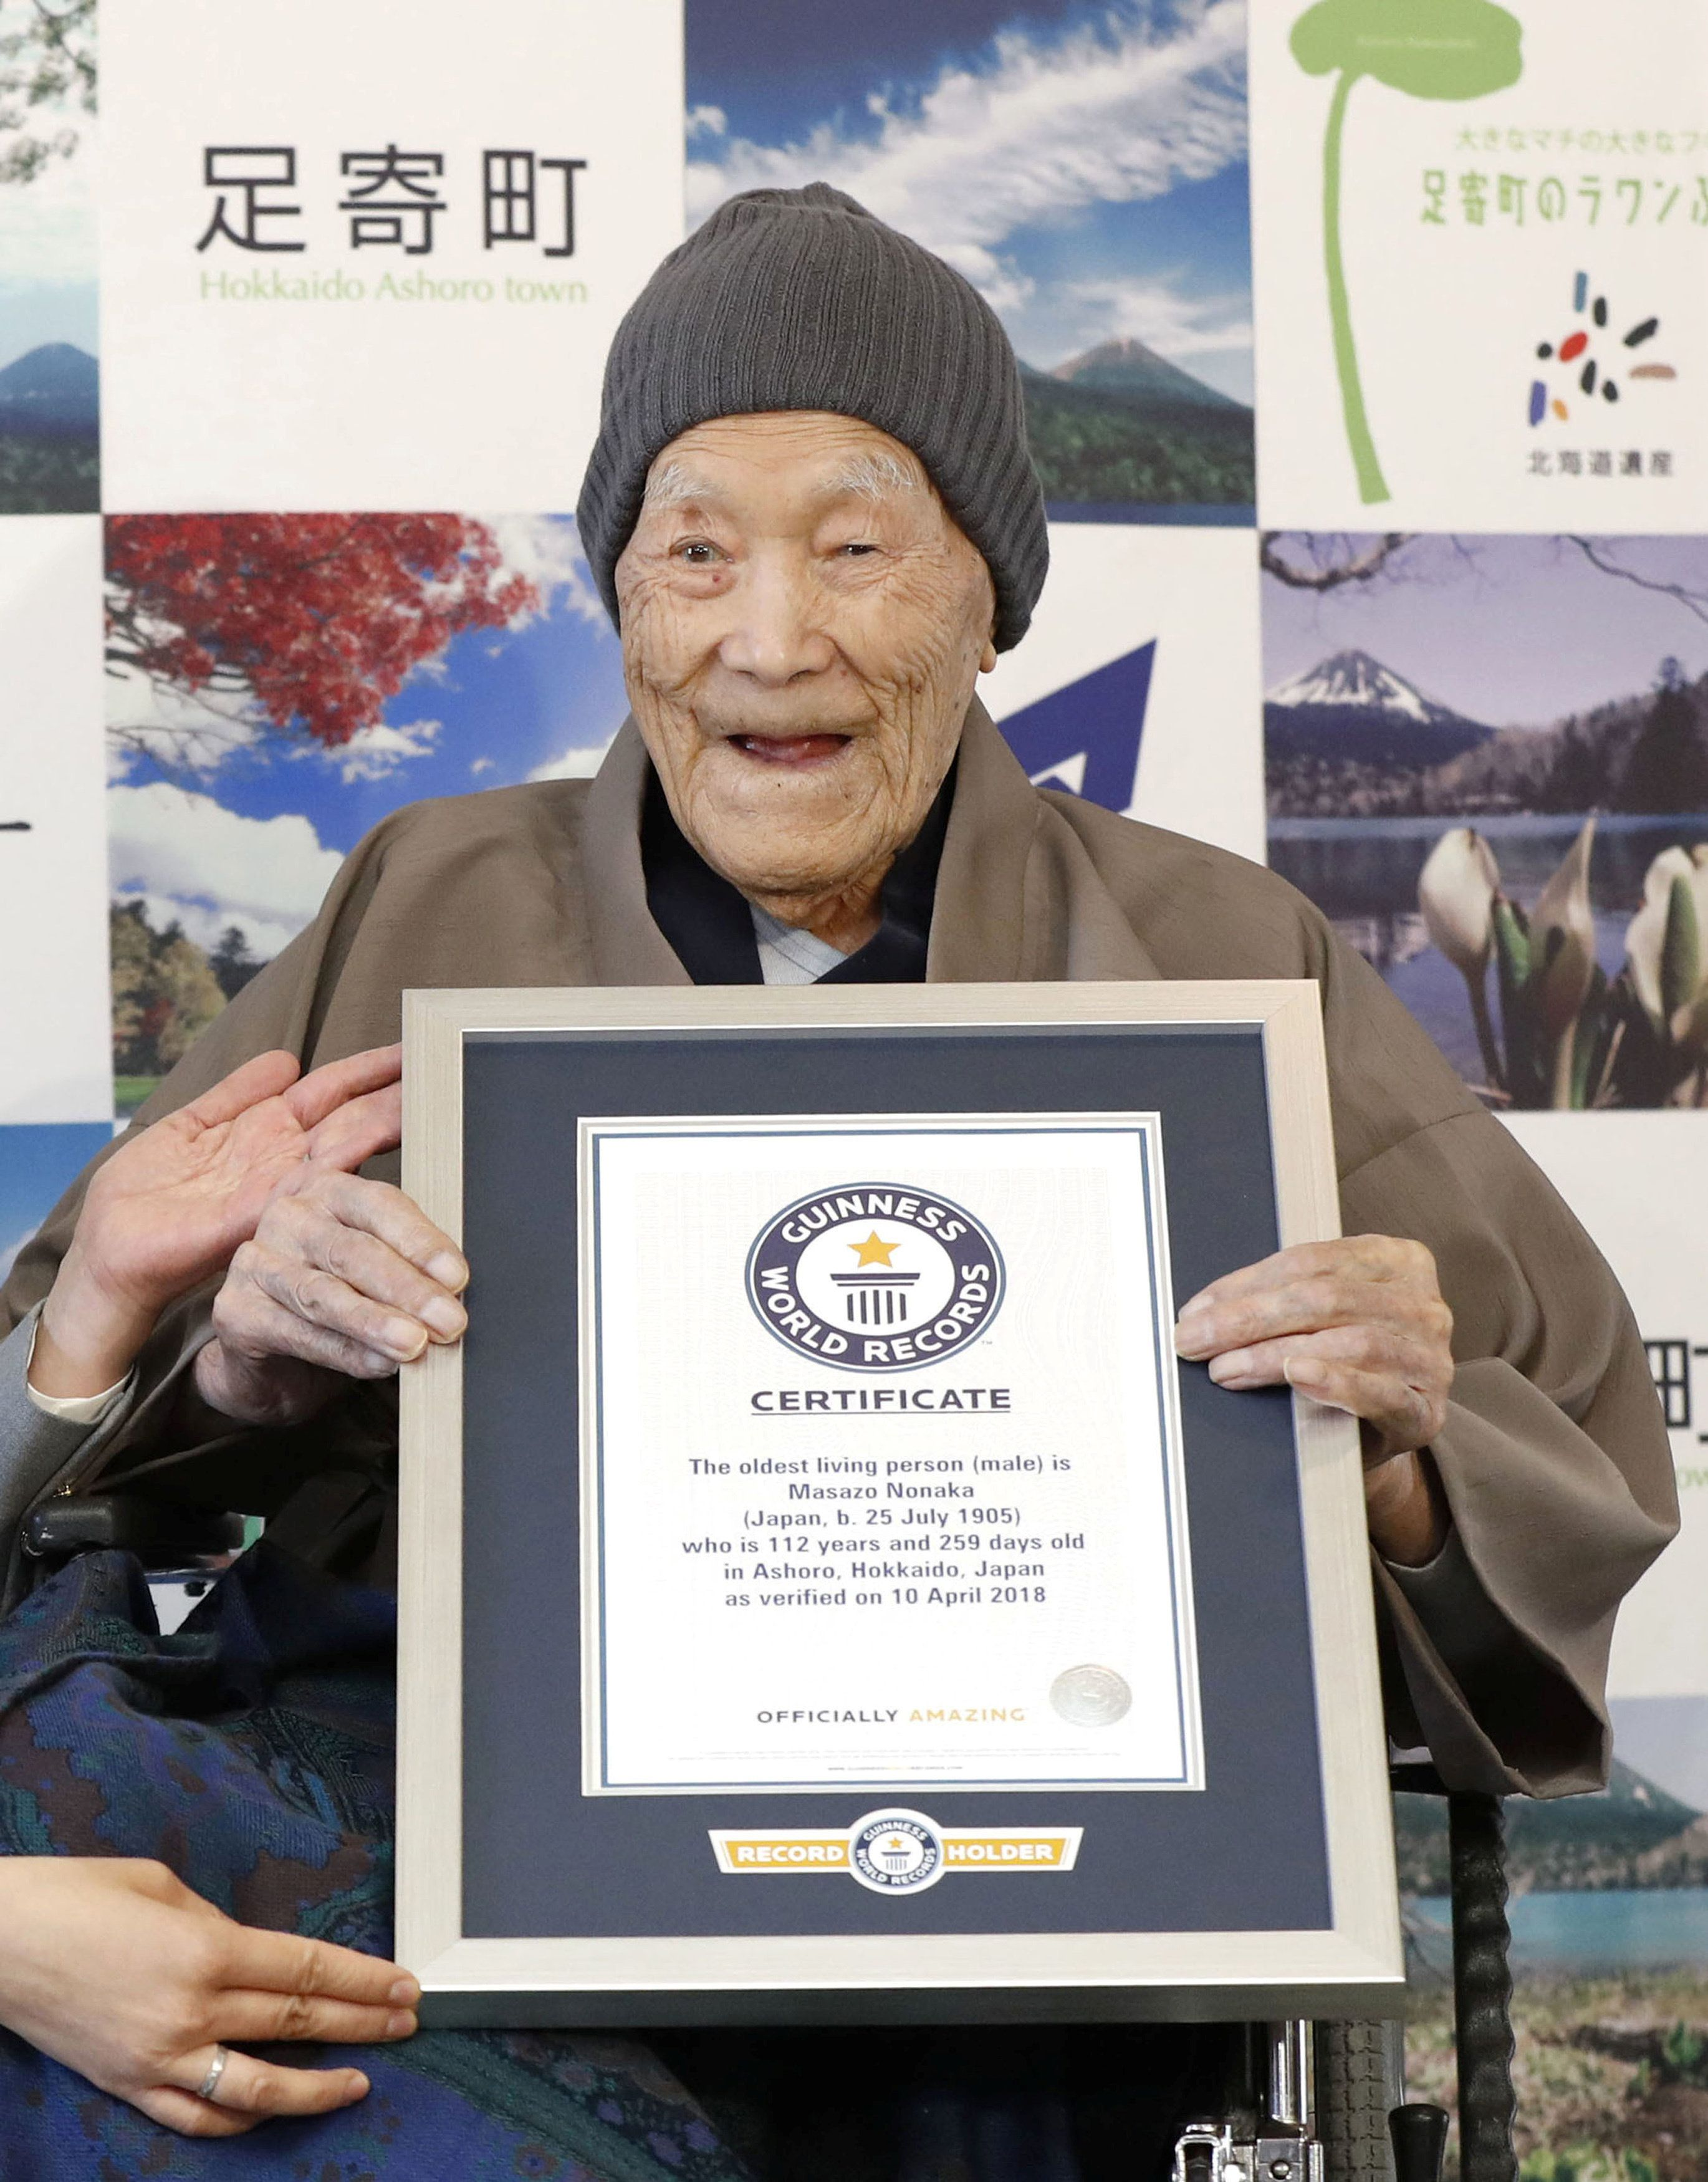 Masazo Nonaka, who was born 112 years and 259 days ago, receives a Guinness World Records certificate naming him the world's